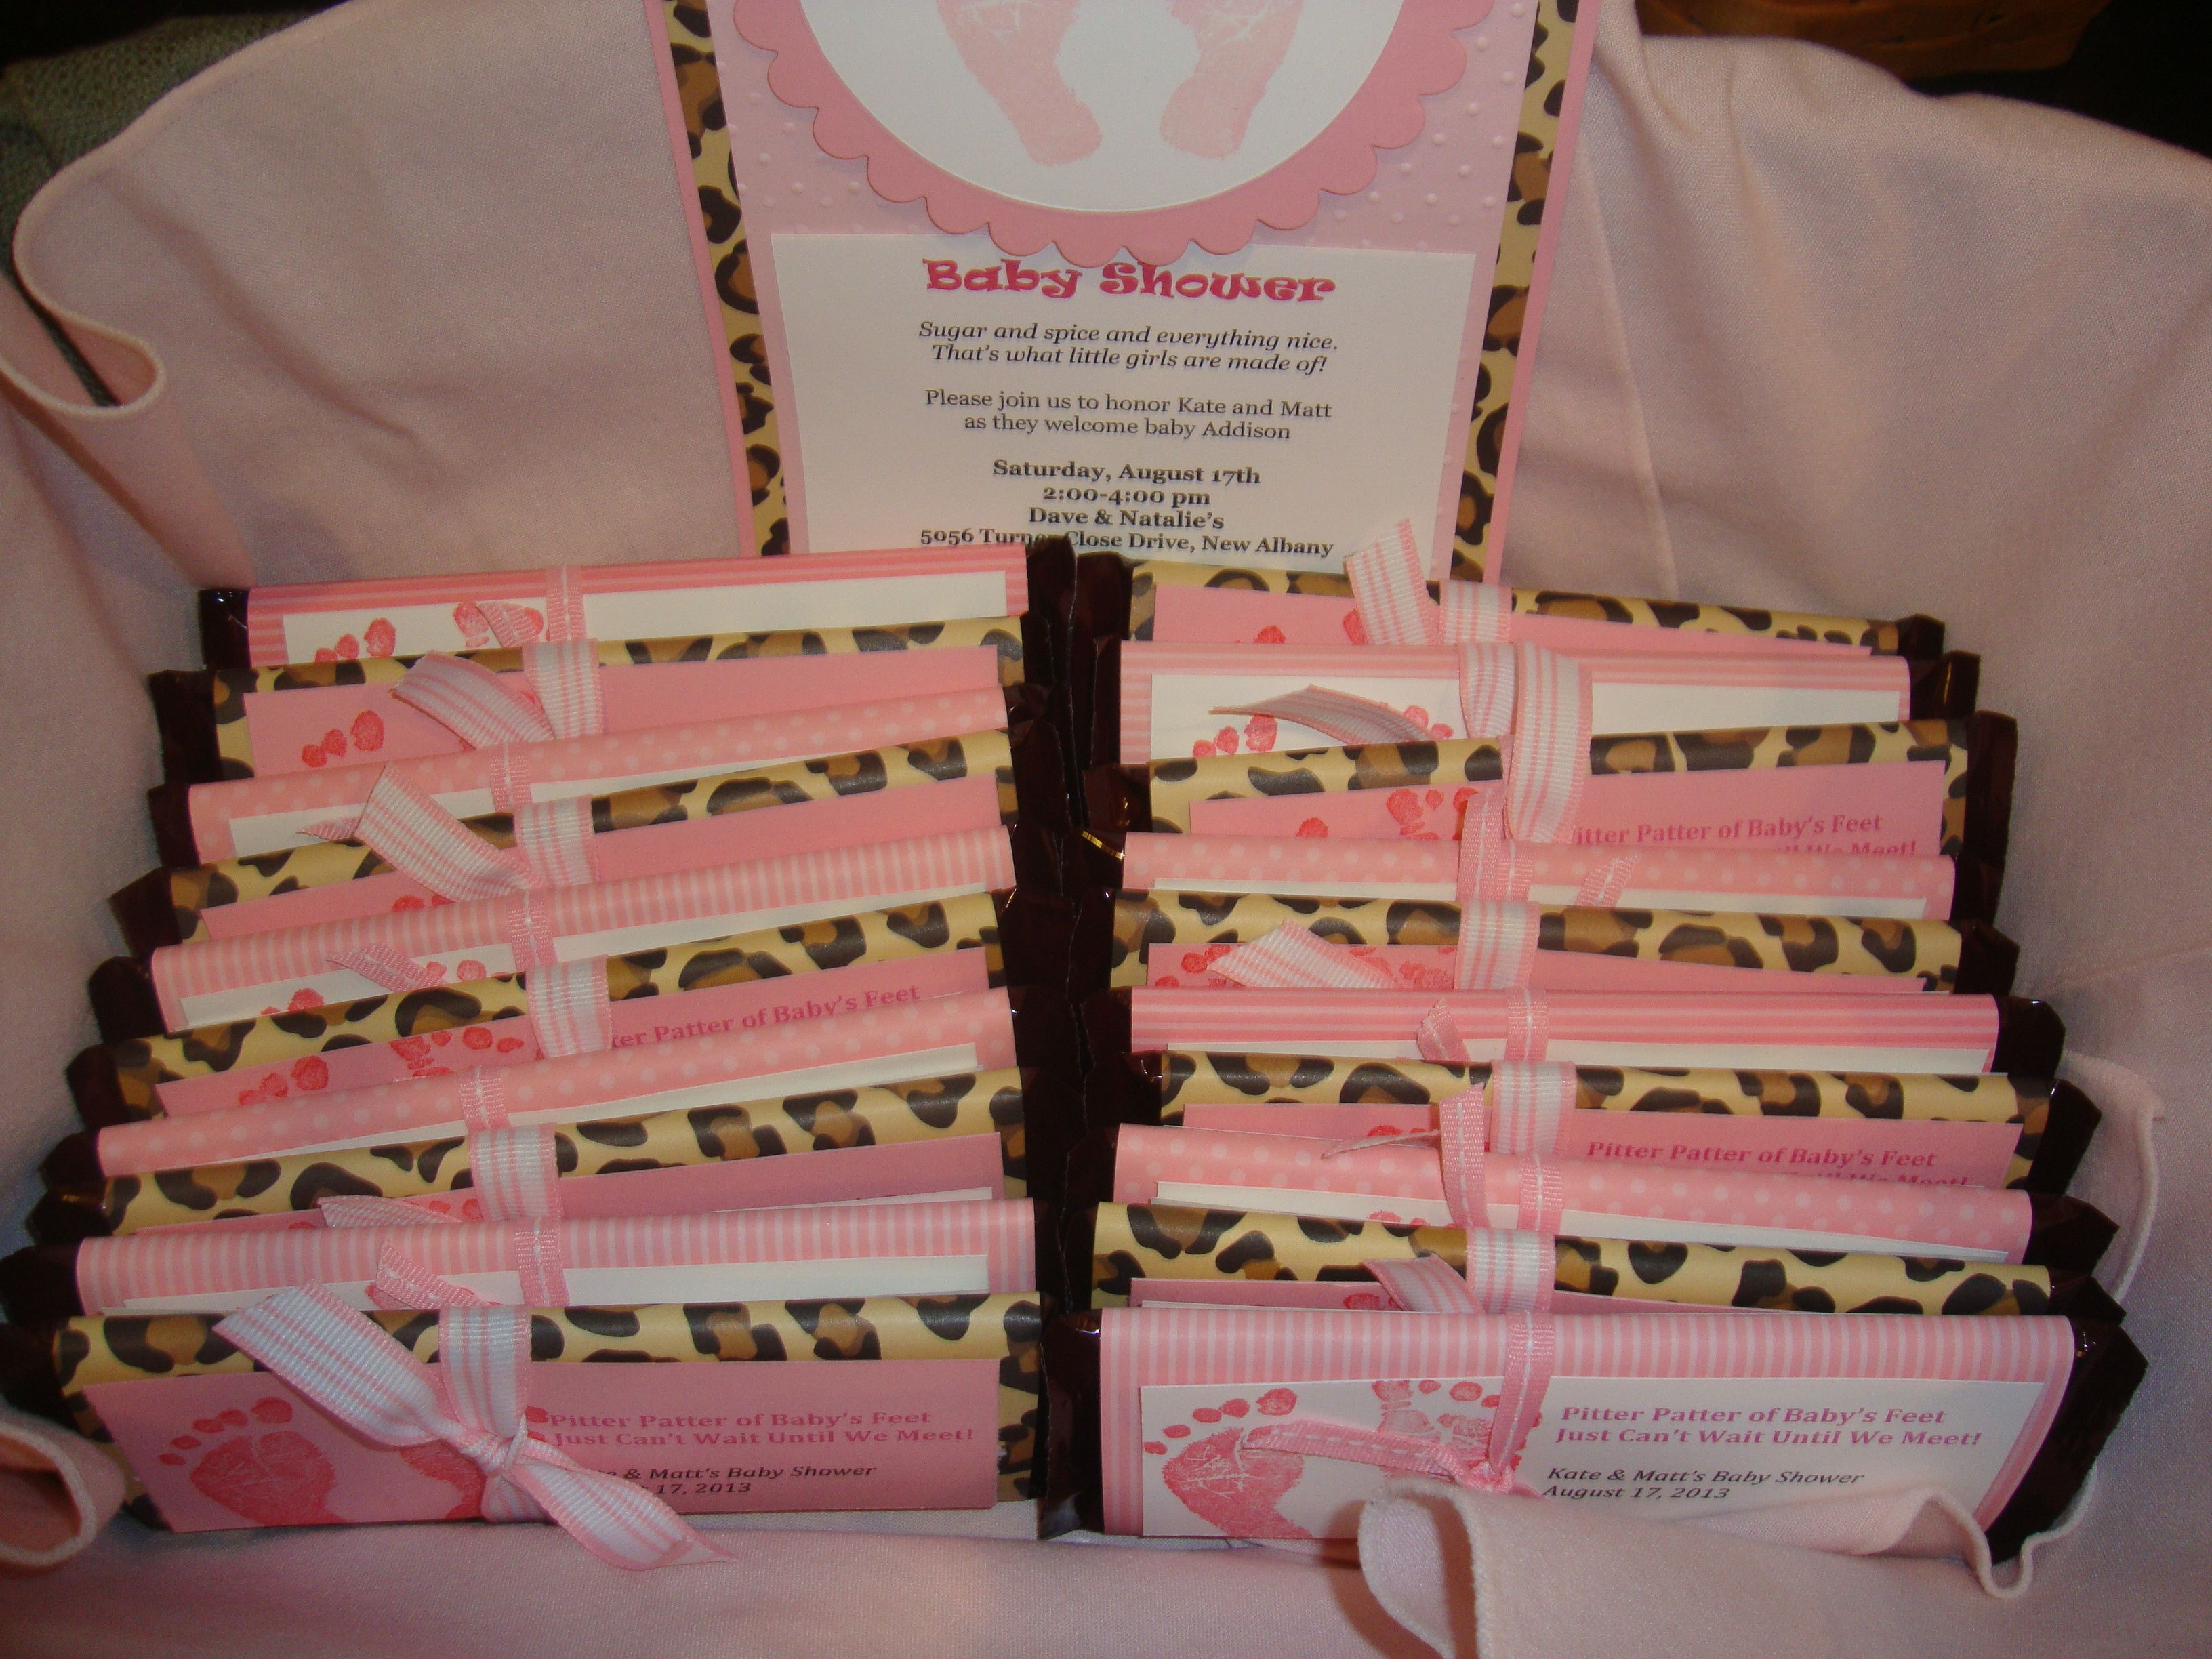 Baby Shower party favor idea Hershey chocolate bar wrapped in